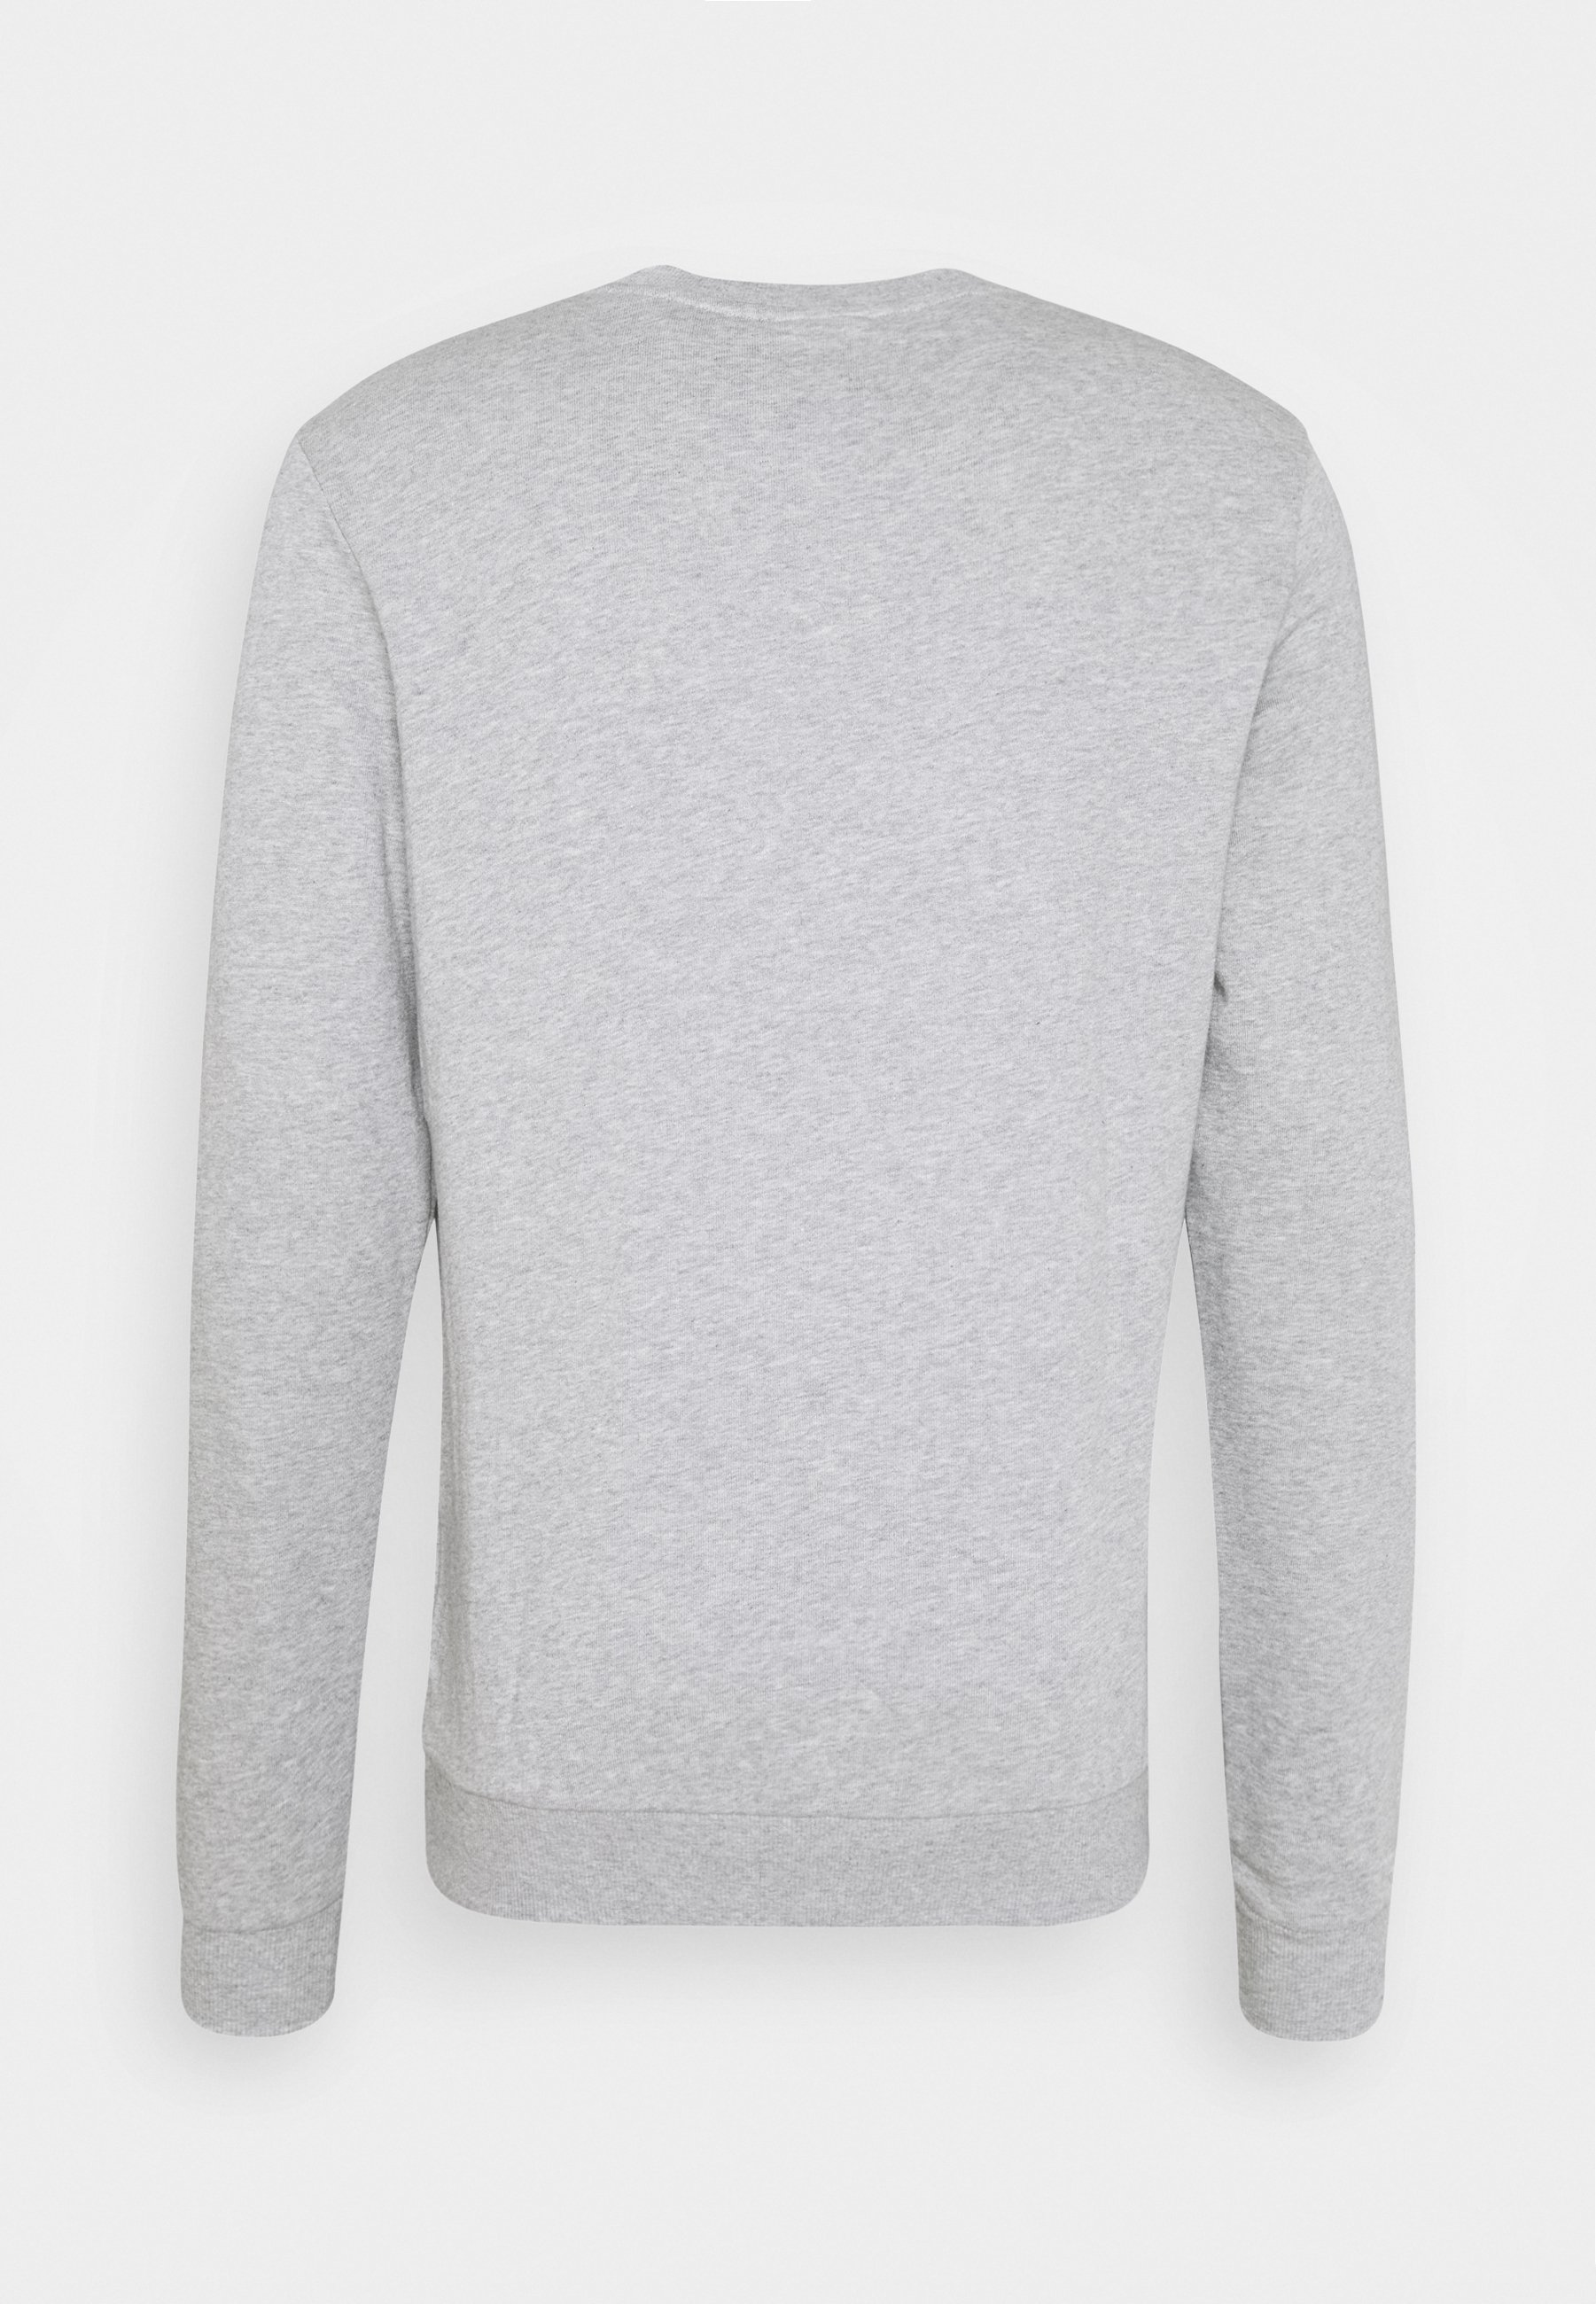 Knowledge Cotton Apparel Sweatshirt - grey melange